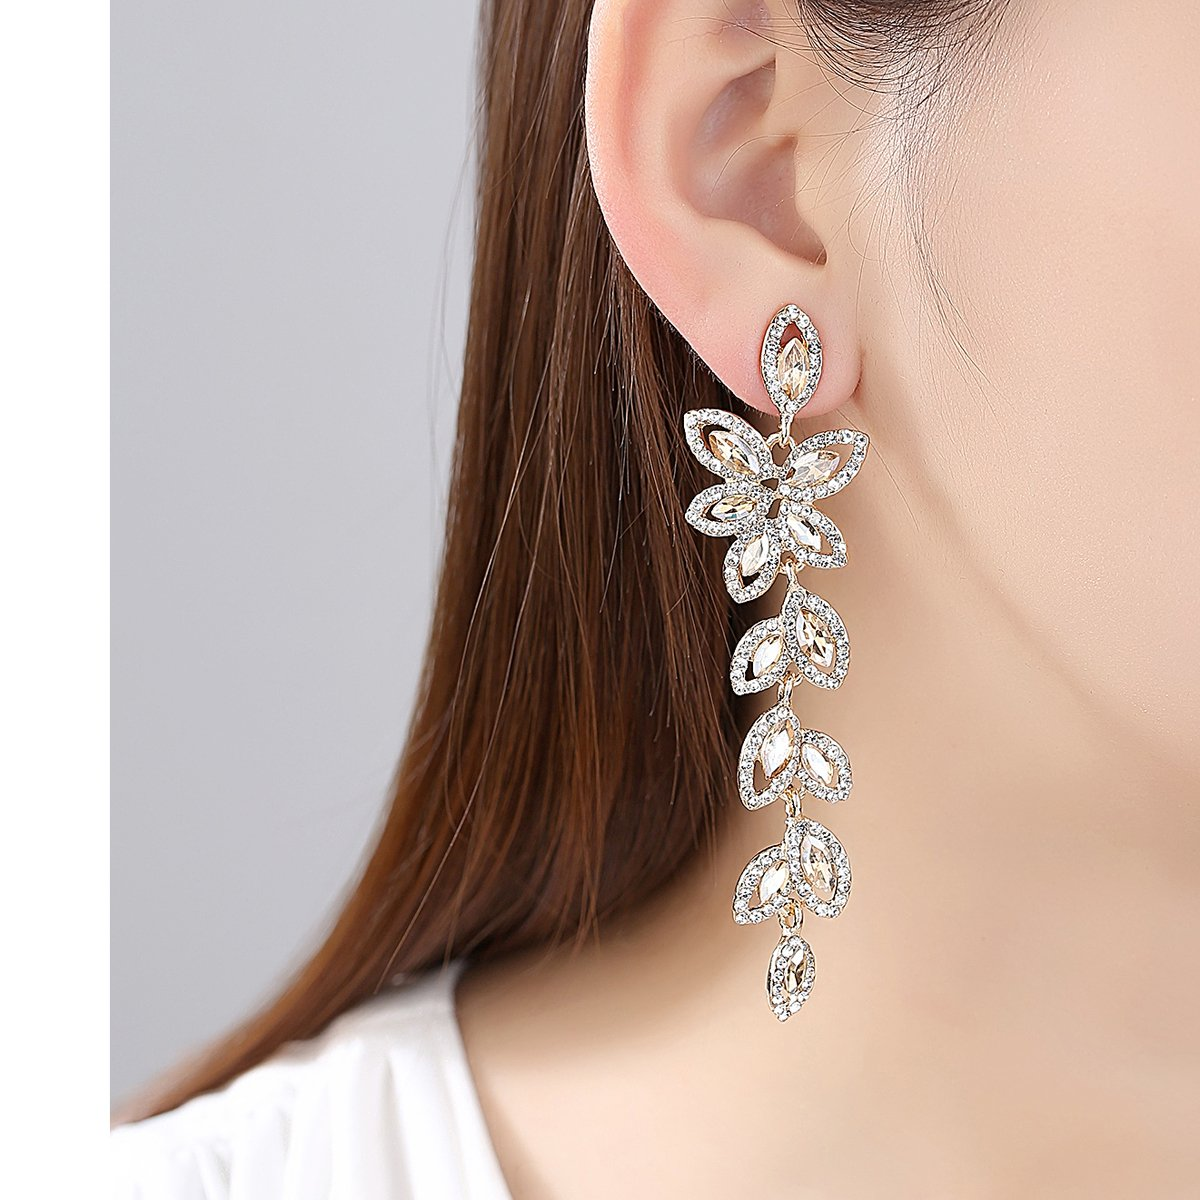 mecresh Champagne Rhinestone Leaf-Shape Earring and Bracelets Wedding Jewelry Sets for Women Brides Bridesmaid by mecresh (Image #2)